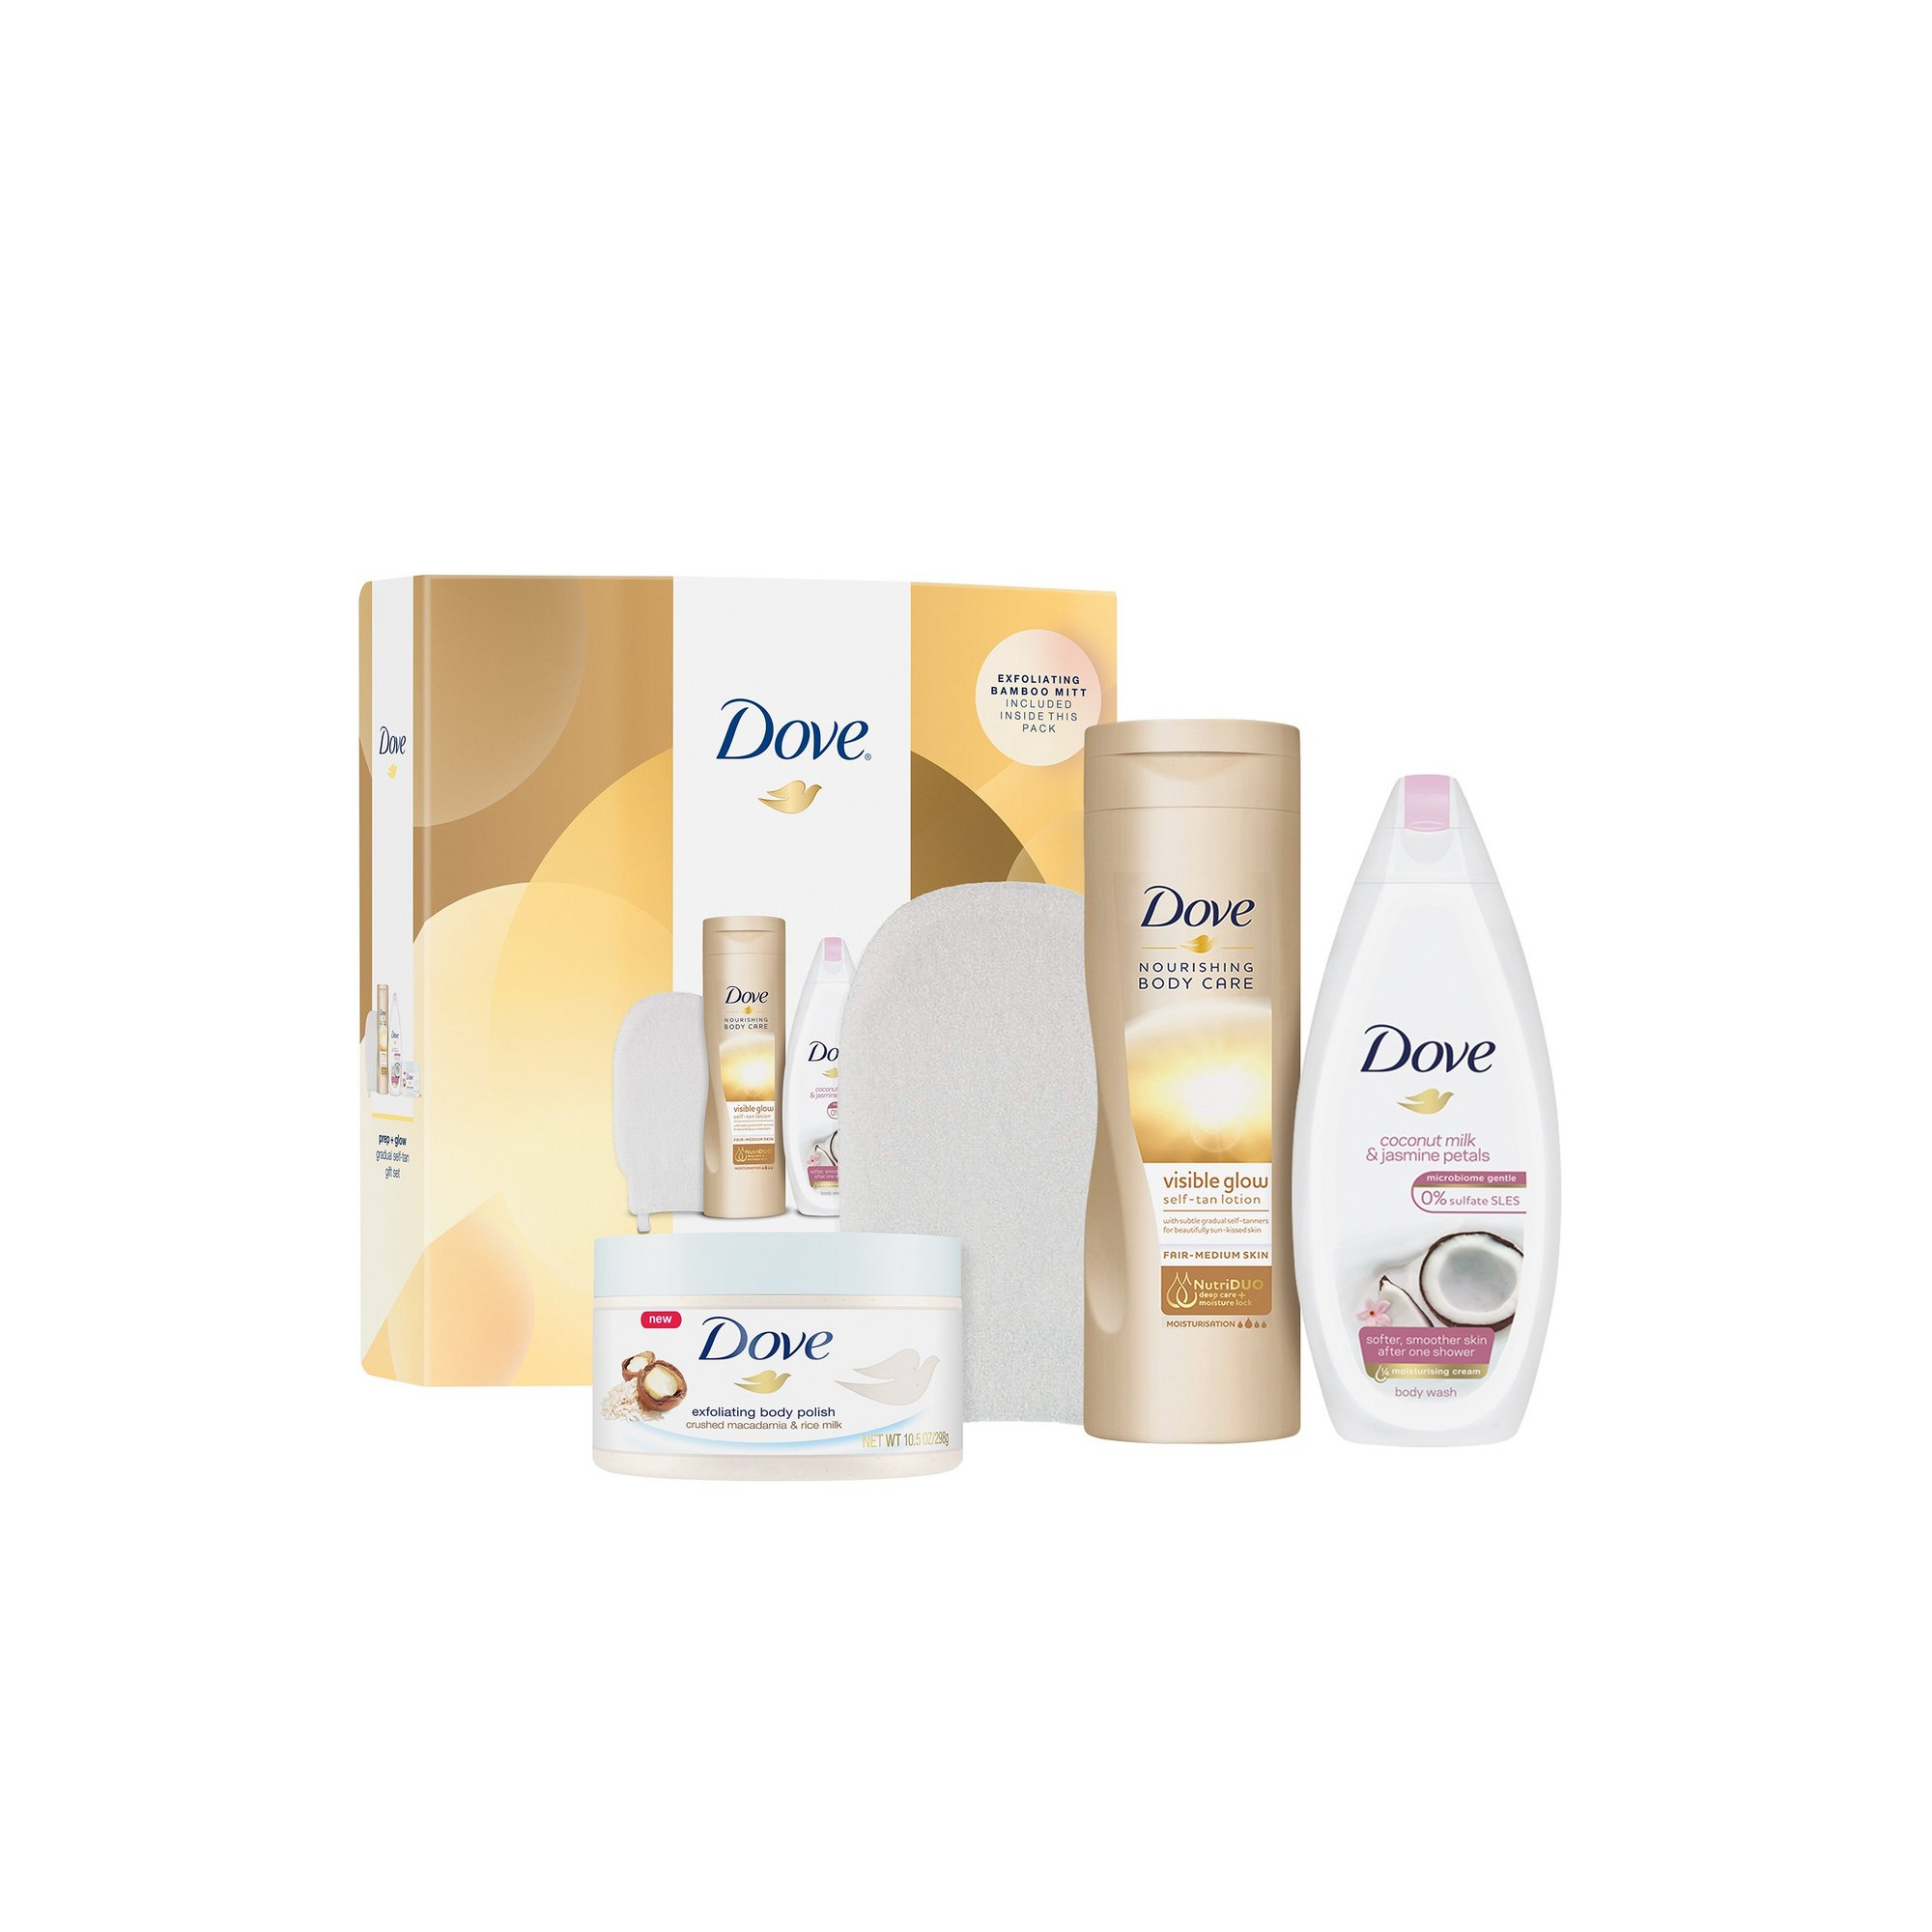 Image of Dove Prep and Glow Gradual Tan Collection Gift Set with Body Mitt